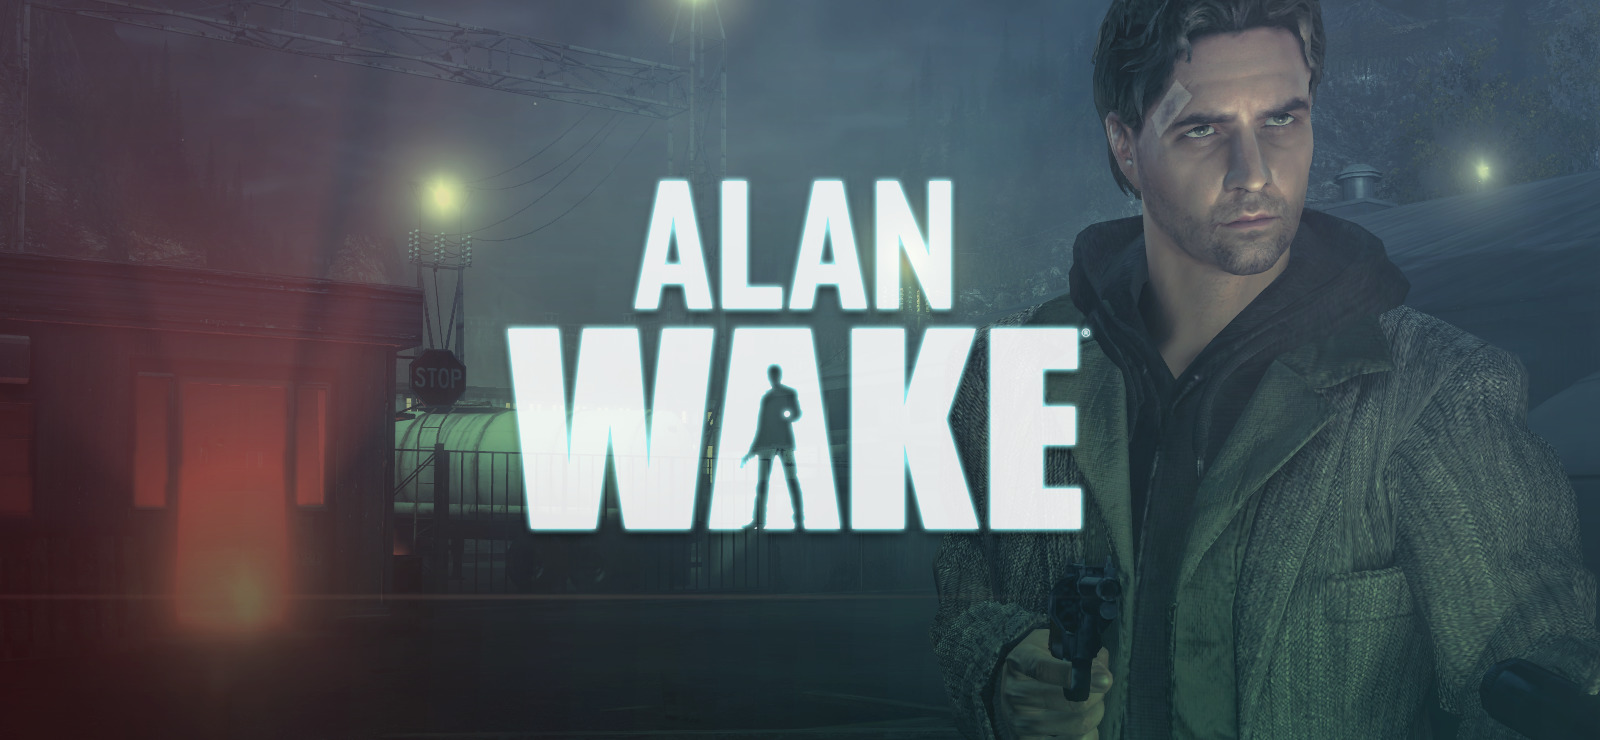 Энтузиаст воссоздает локации Alan Wake на Unreal Engine 4